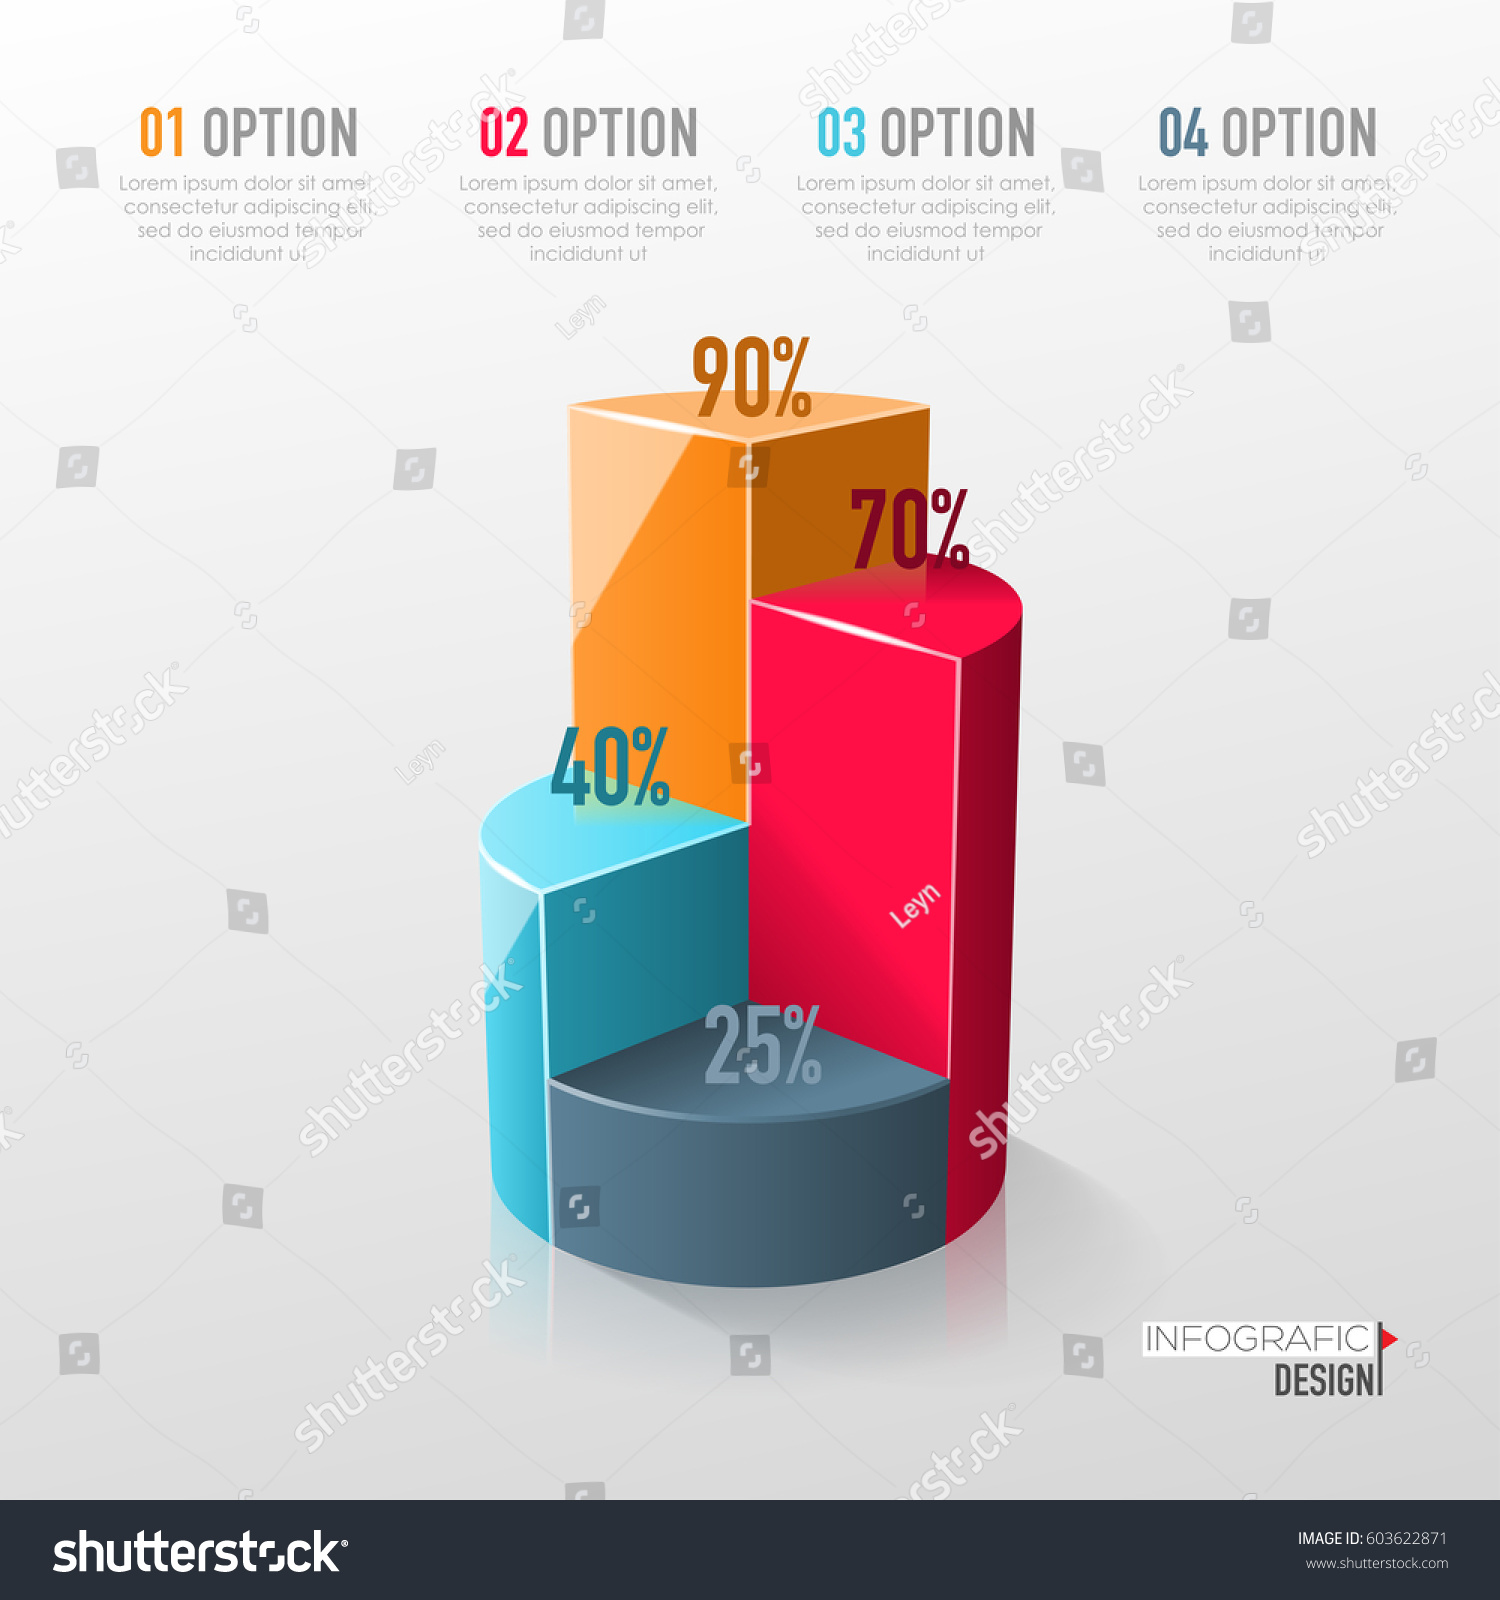 Creative Vector Colorful 3 D Pie Chart Stock Vector 603622871 ...